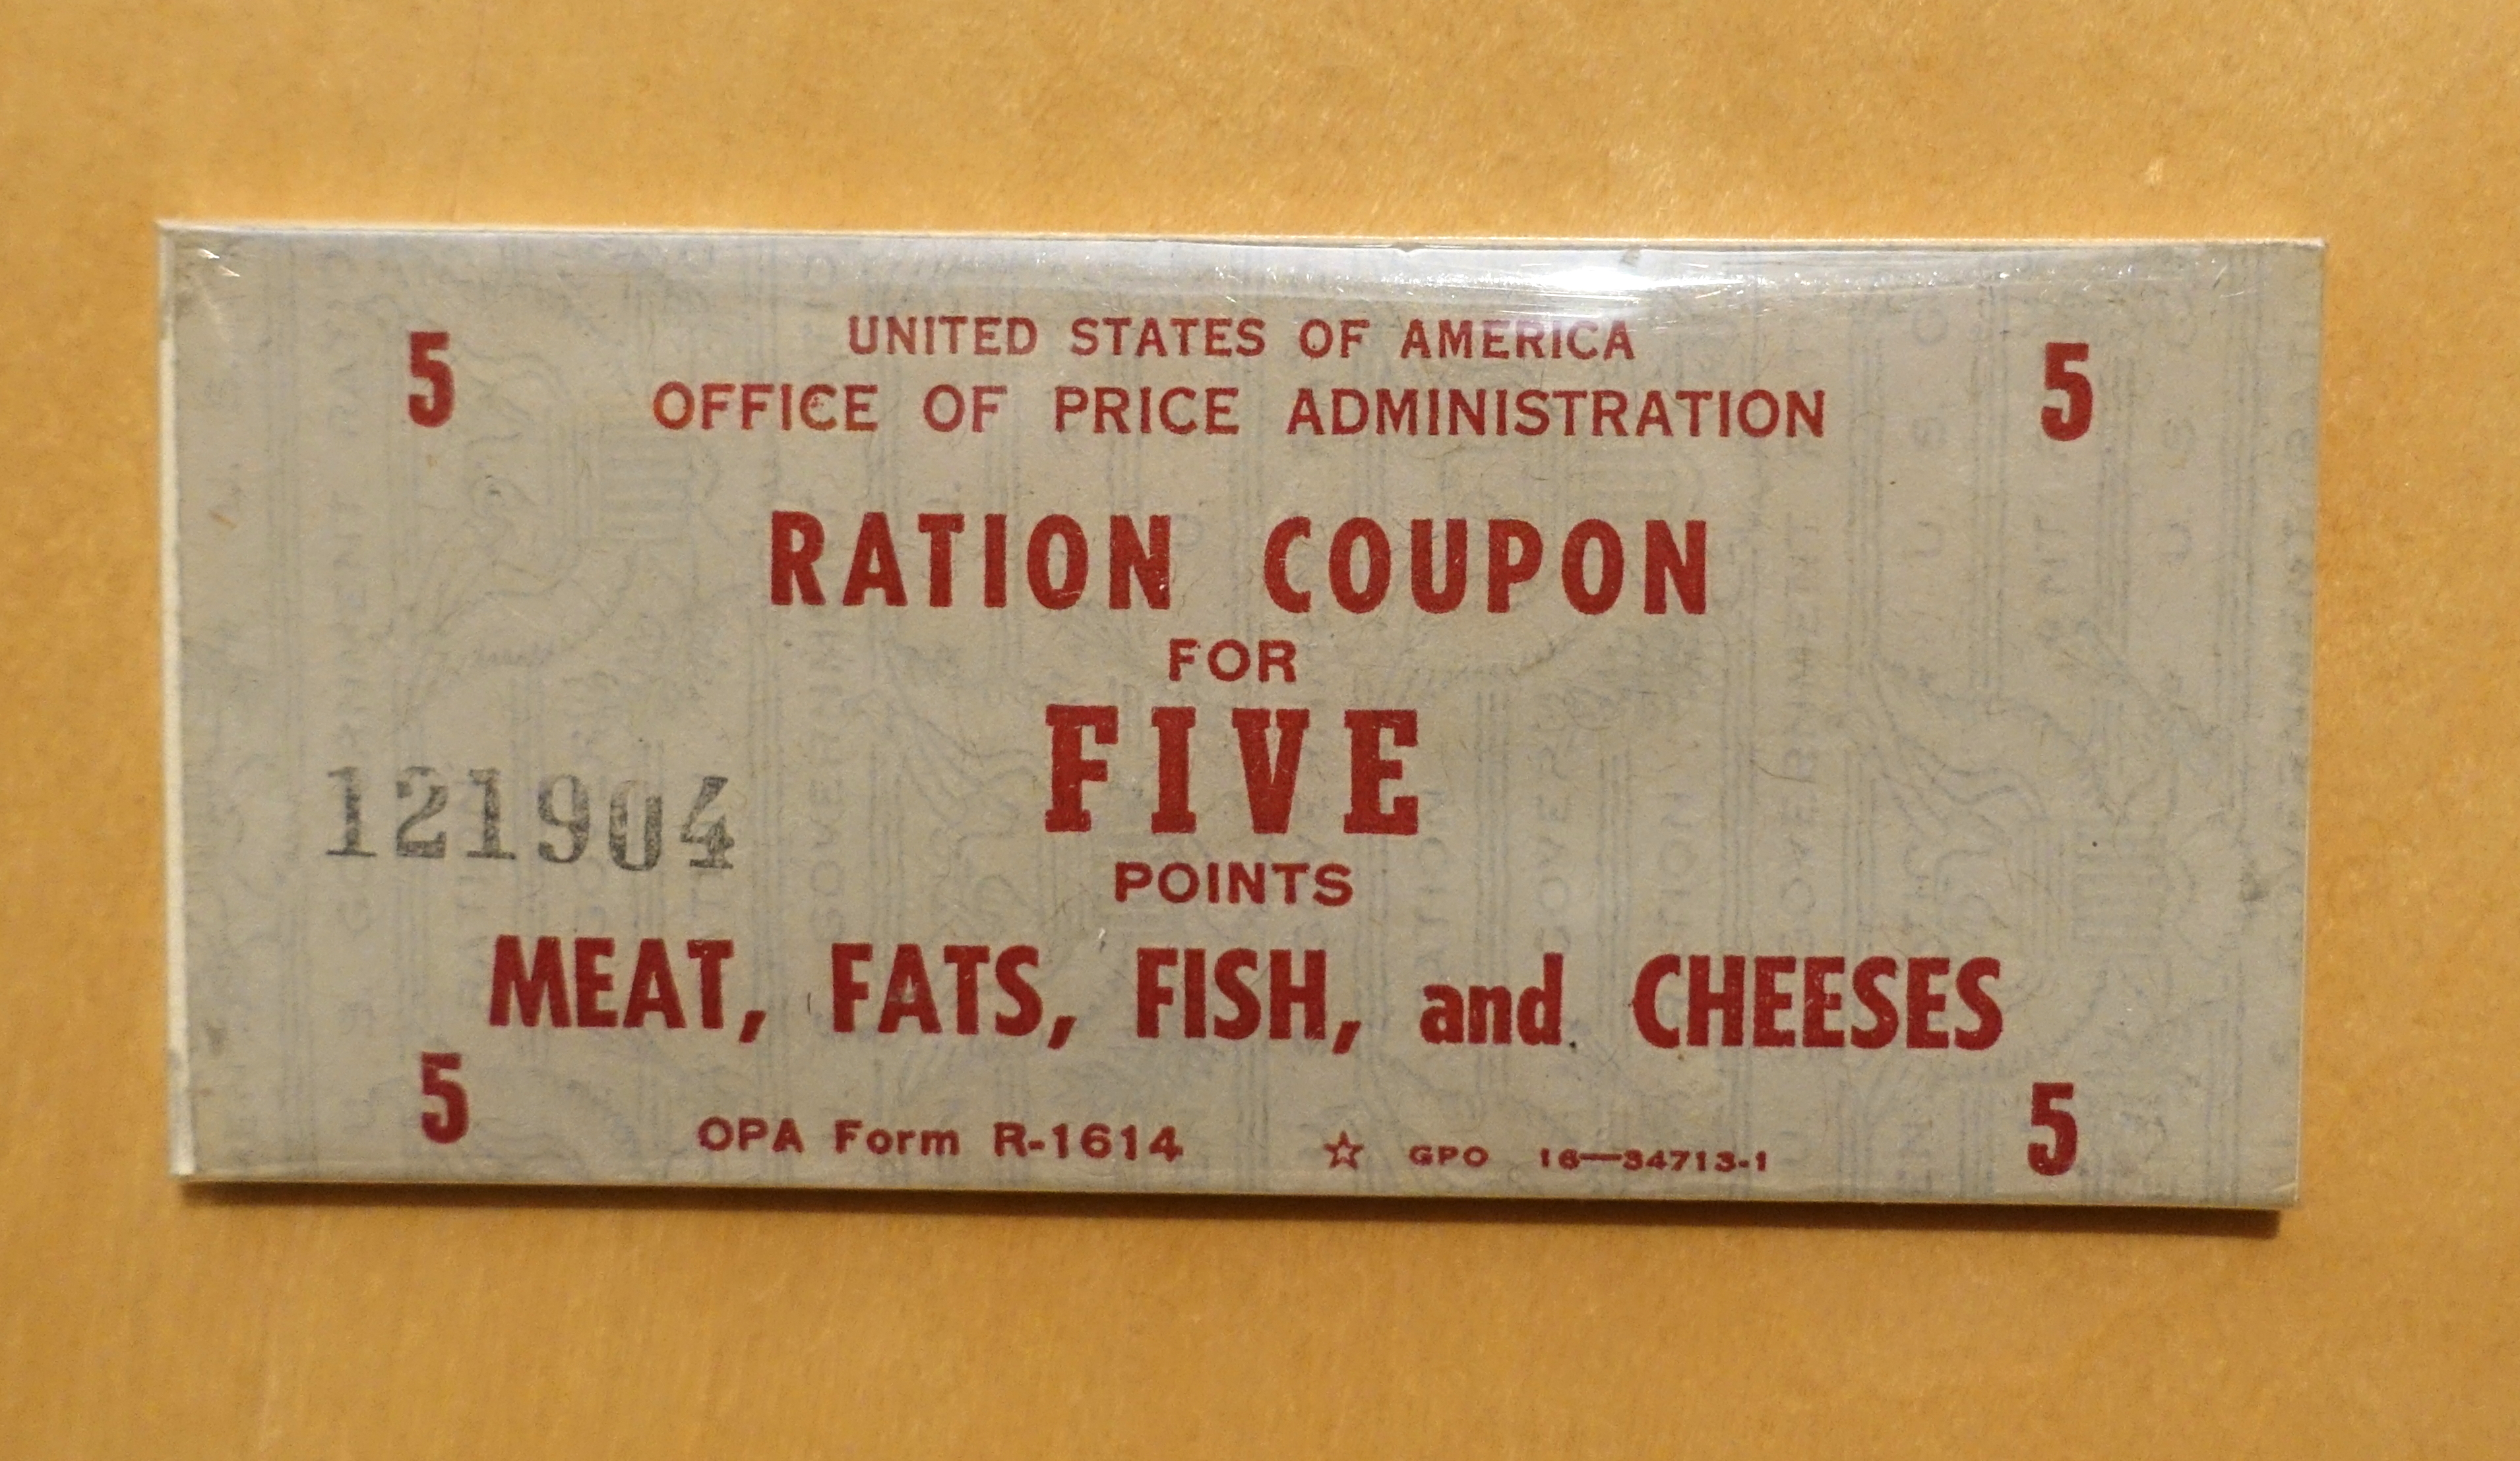 File Ration Coupon For Five Points Meat Fats Fish And Cheeses National Museum Of American History Dsc00068 Jpg Wikimedia Commons